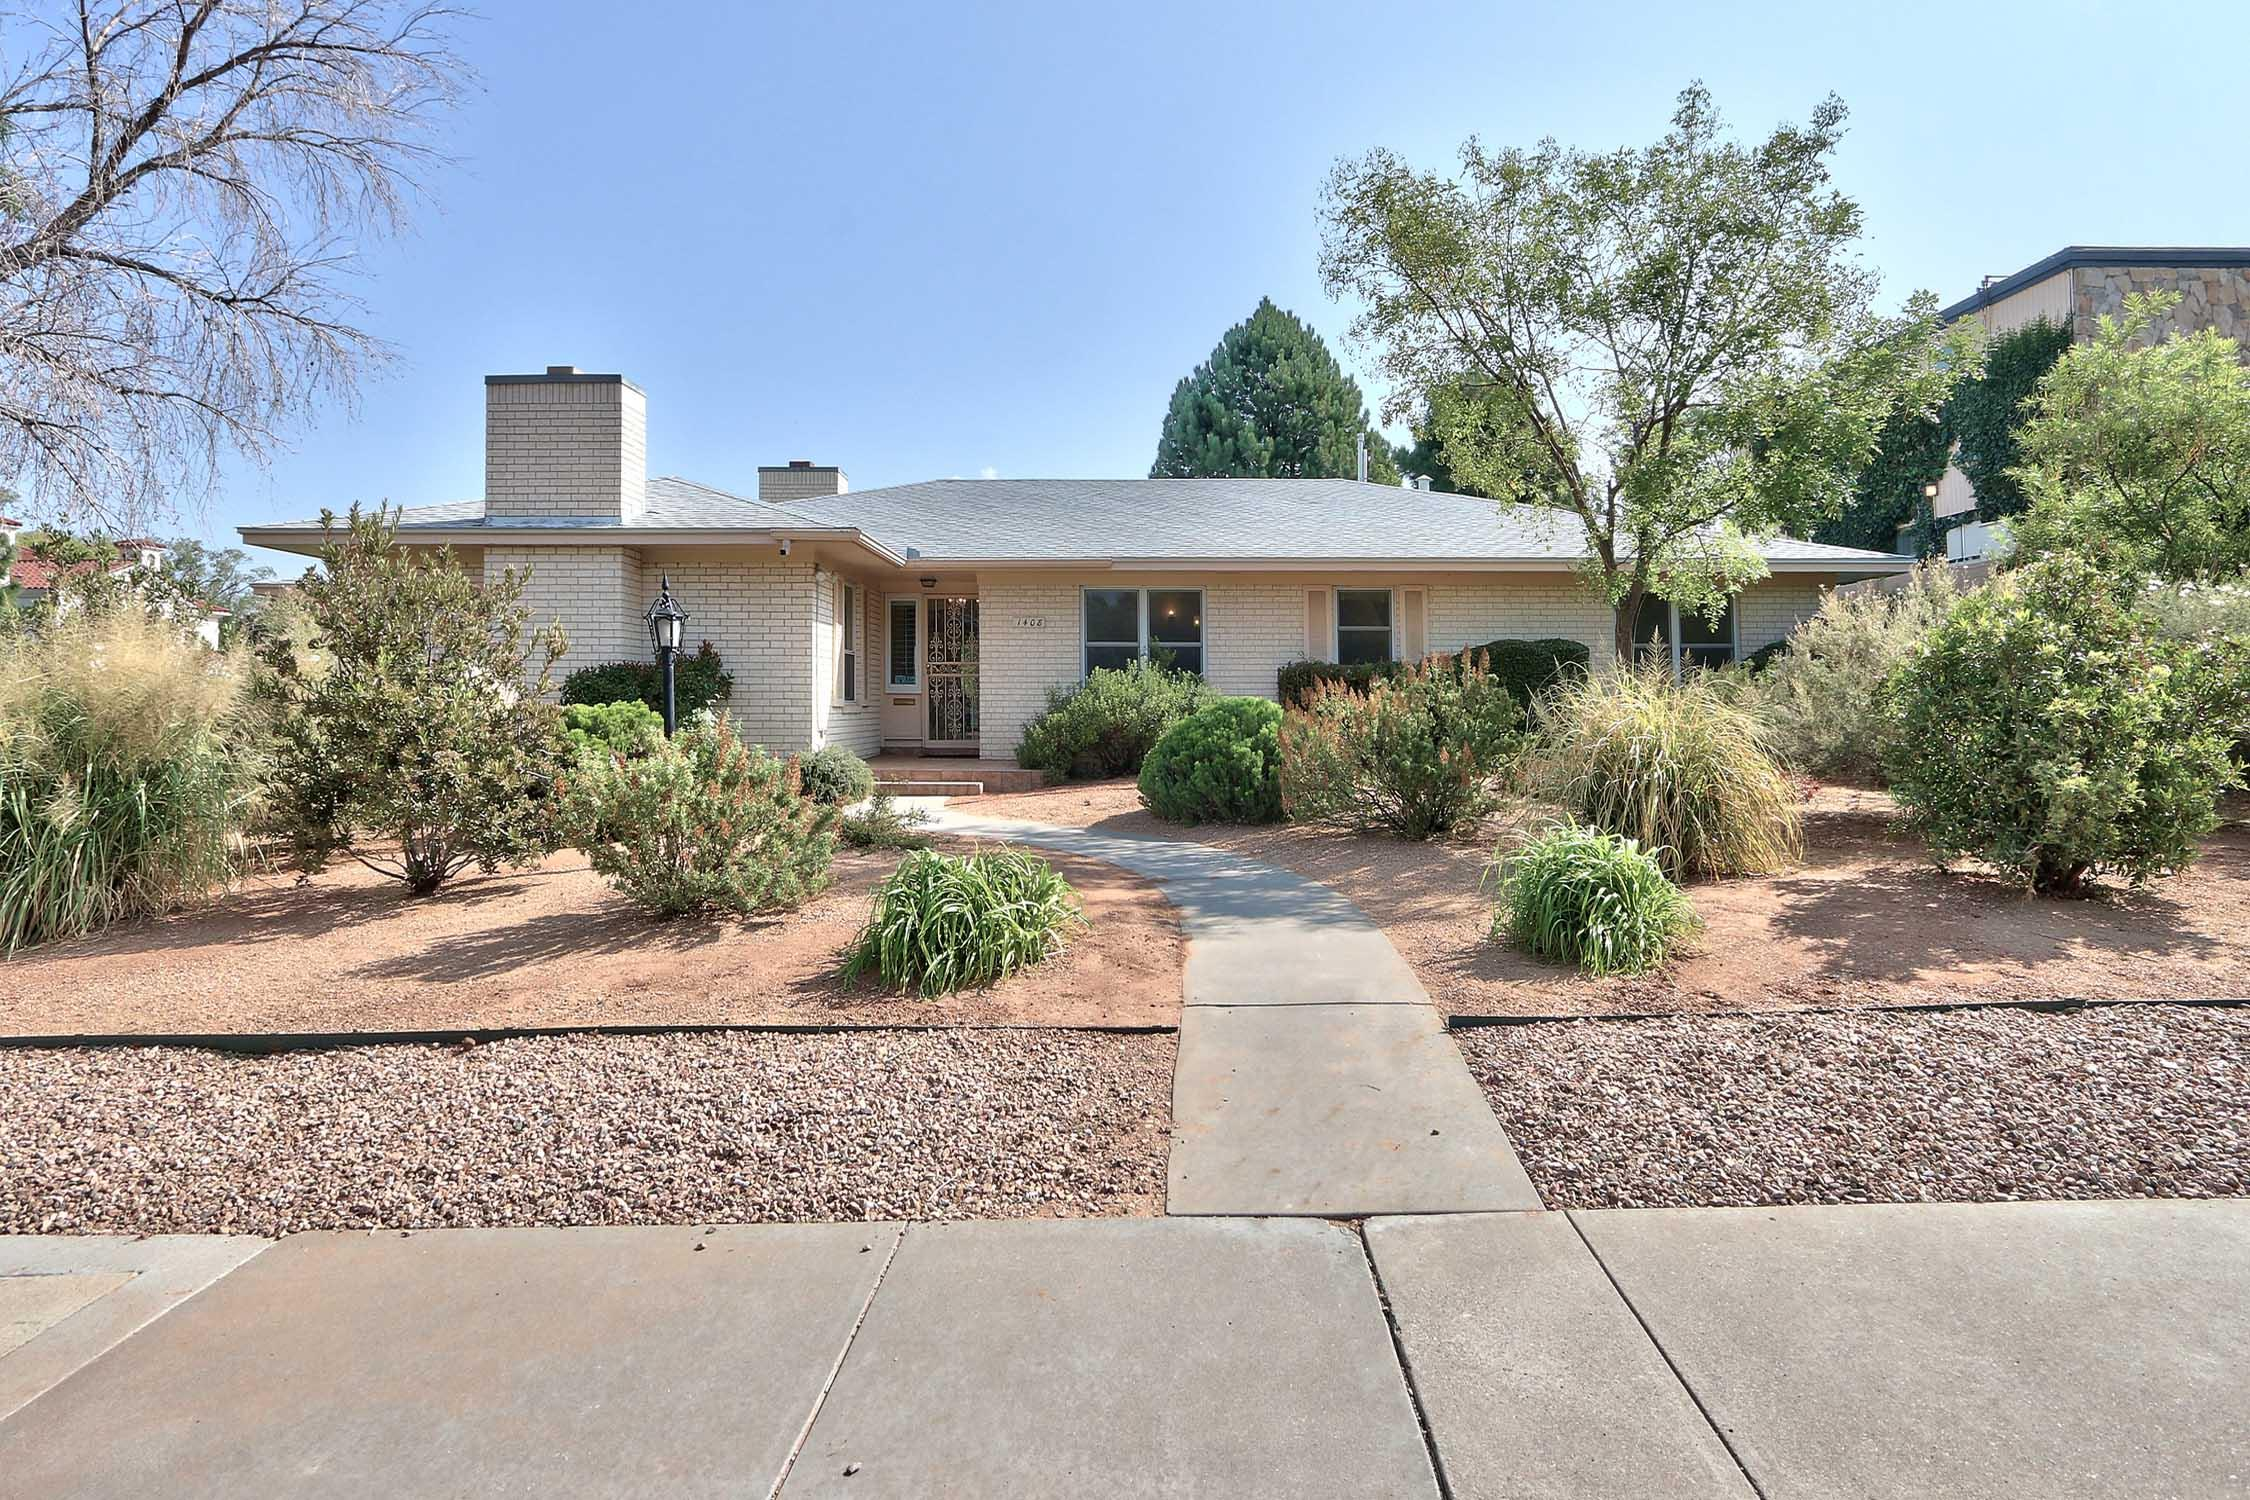 UNM Mid Century classic in lovely Altura Park neighborhood. Mossman built single level. Spacious open floor plan with 2 en-suite bedrooms plus 2 more. Professionally designed and landscaped xeric front and side yard. Grassy back is clean slate for buyers kids, pets and big enough for a pool. Roof replaced 9/2020. Some newer mechanical systems.  Updated kitchen has quartz and hardwood counters, St. Charles cabinets, Sub zero and large dining nook. Plantation shutters thought out the home. Close to campus, downtown and hospitals in a highly desirable area.